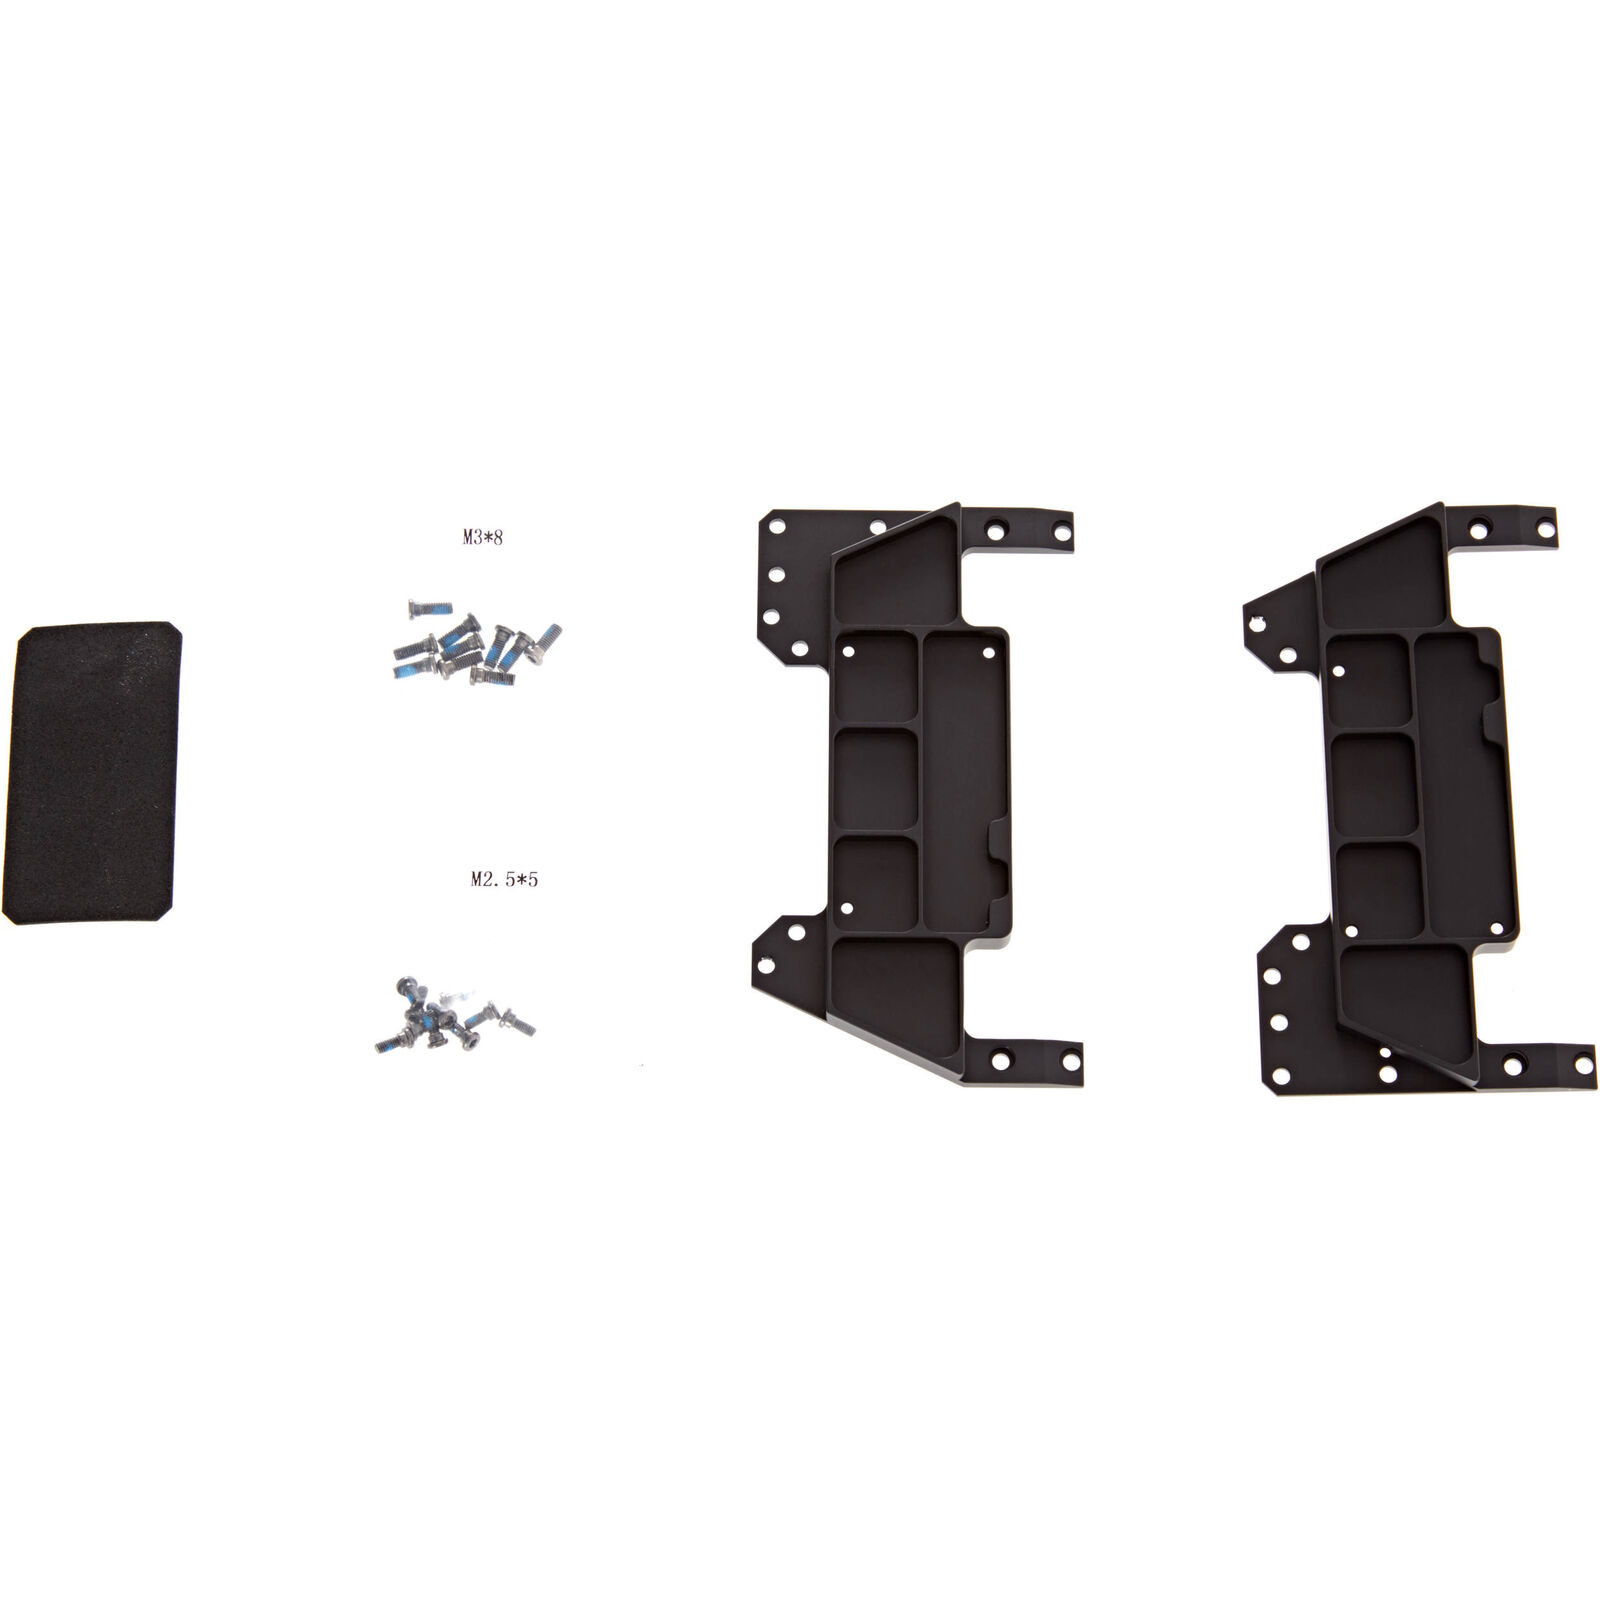 DJI Zenmuse Z15 Part 25 - Z15-GH3 Mounting Frame - US Dealer